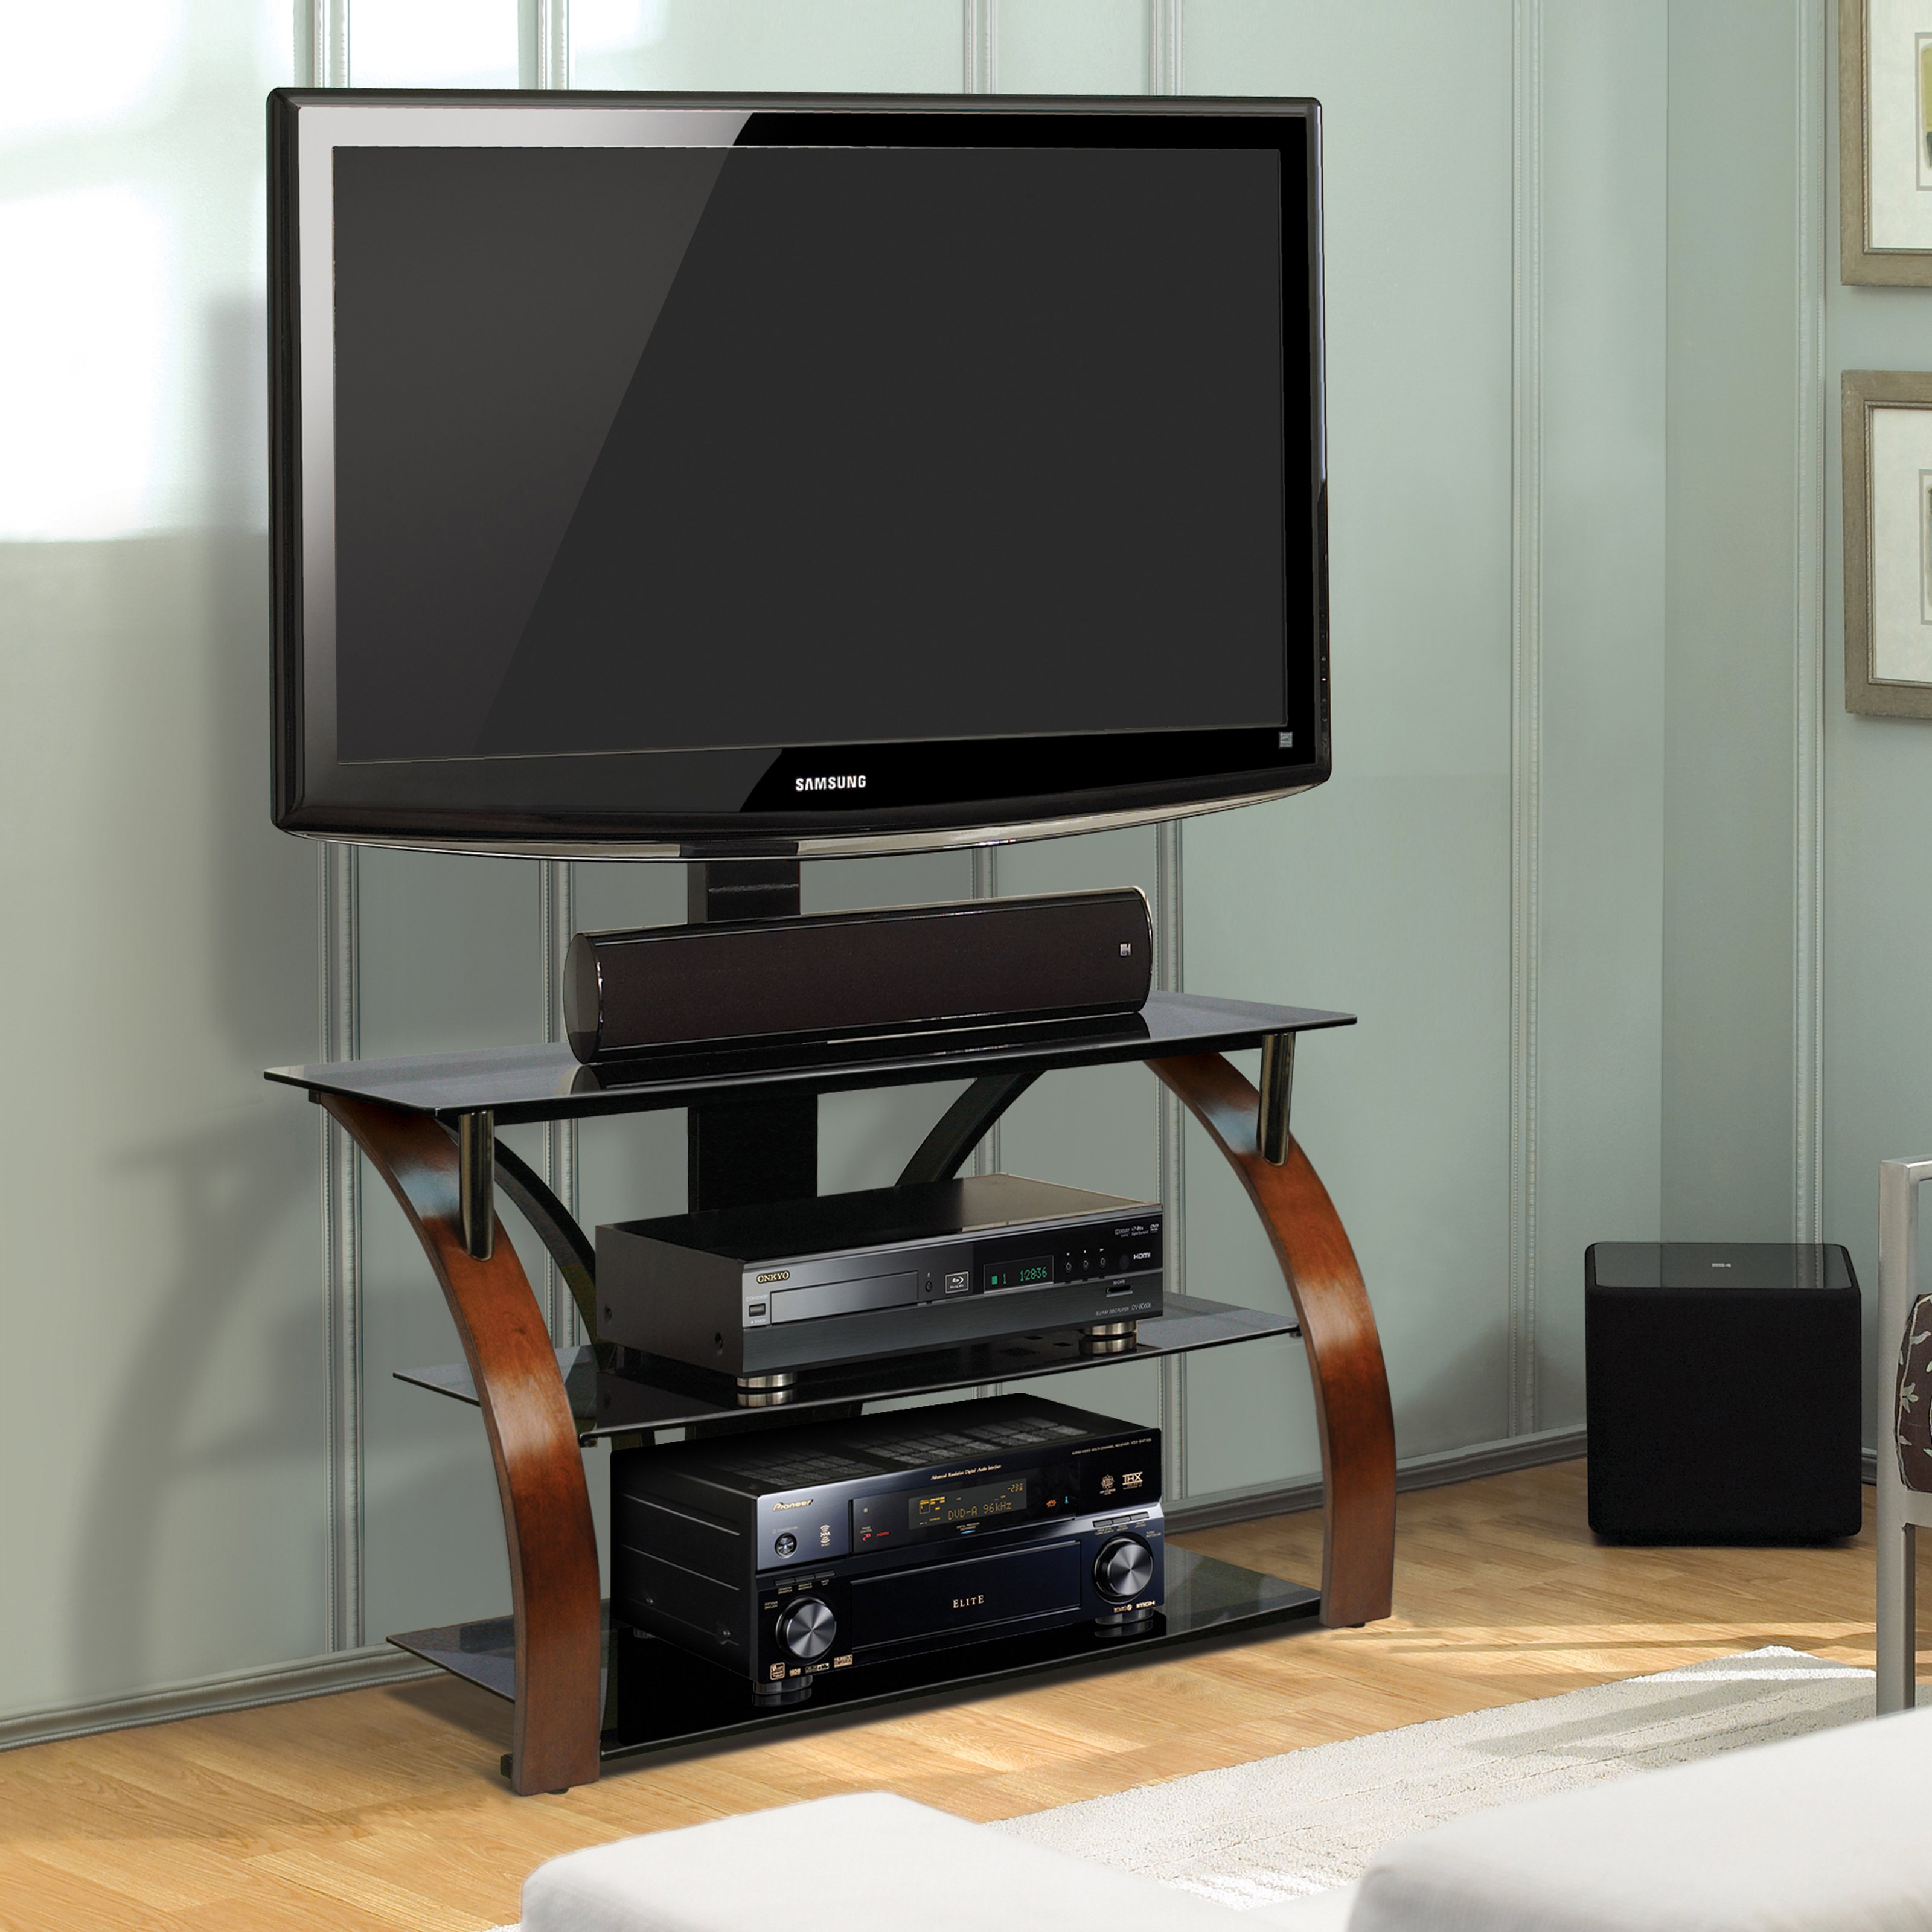 BellO Triple Play 44 in. Universal Flat Panel TV Stand - Vibrant Espresso/Black